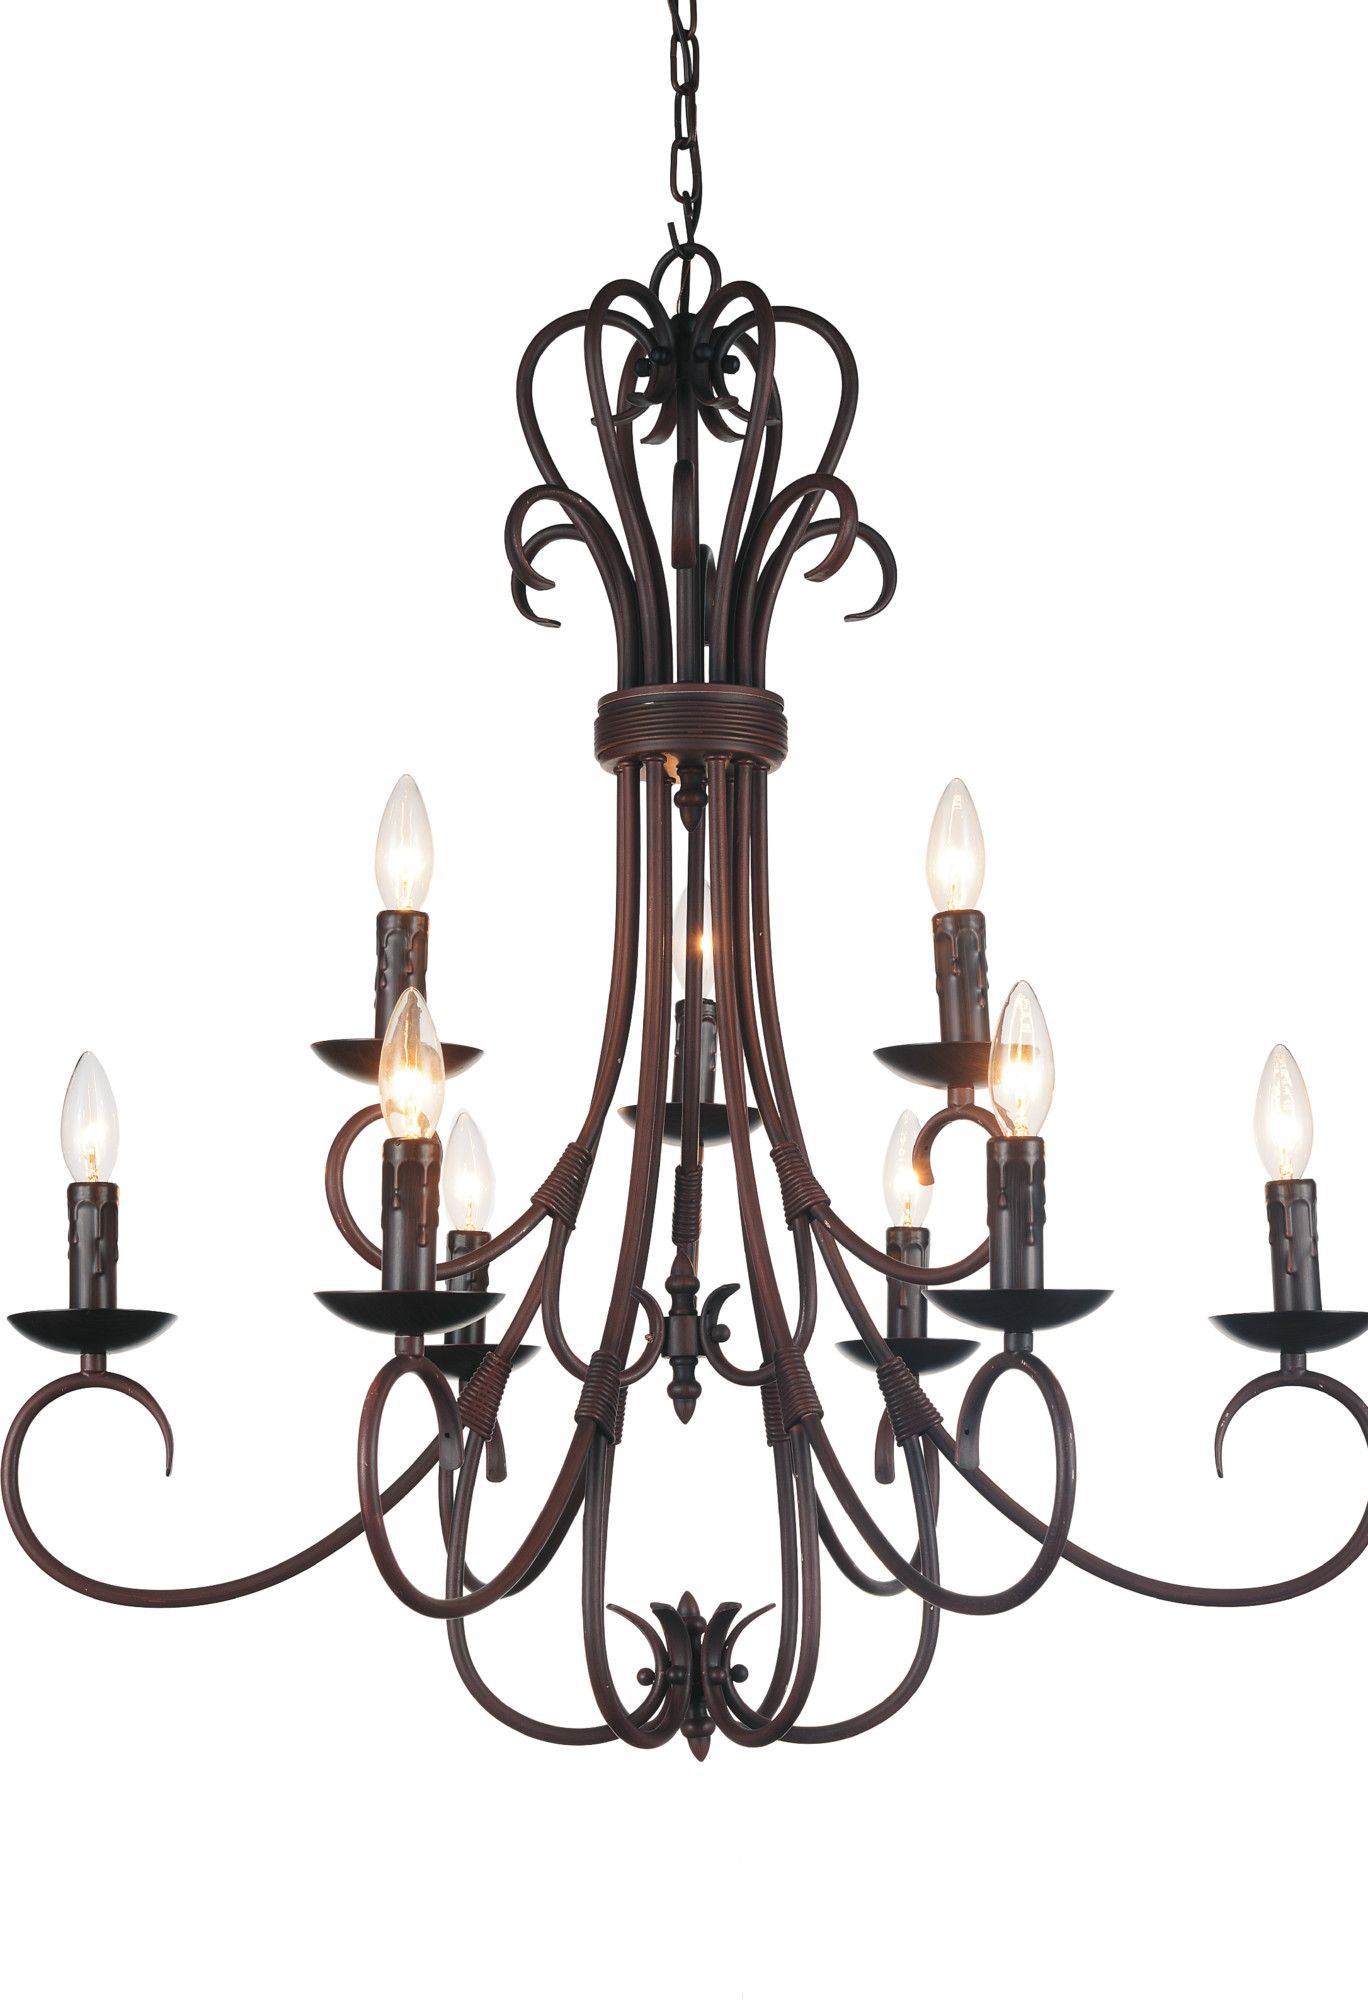 Maddy 6 Light Foyer Lantern Pendant | Products | Chandelier With Regard To Gaines 9 Light Candle Style Chandeliers (View 17 of 30)